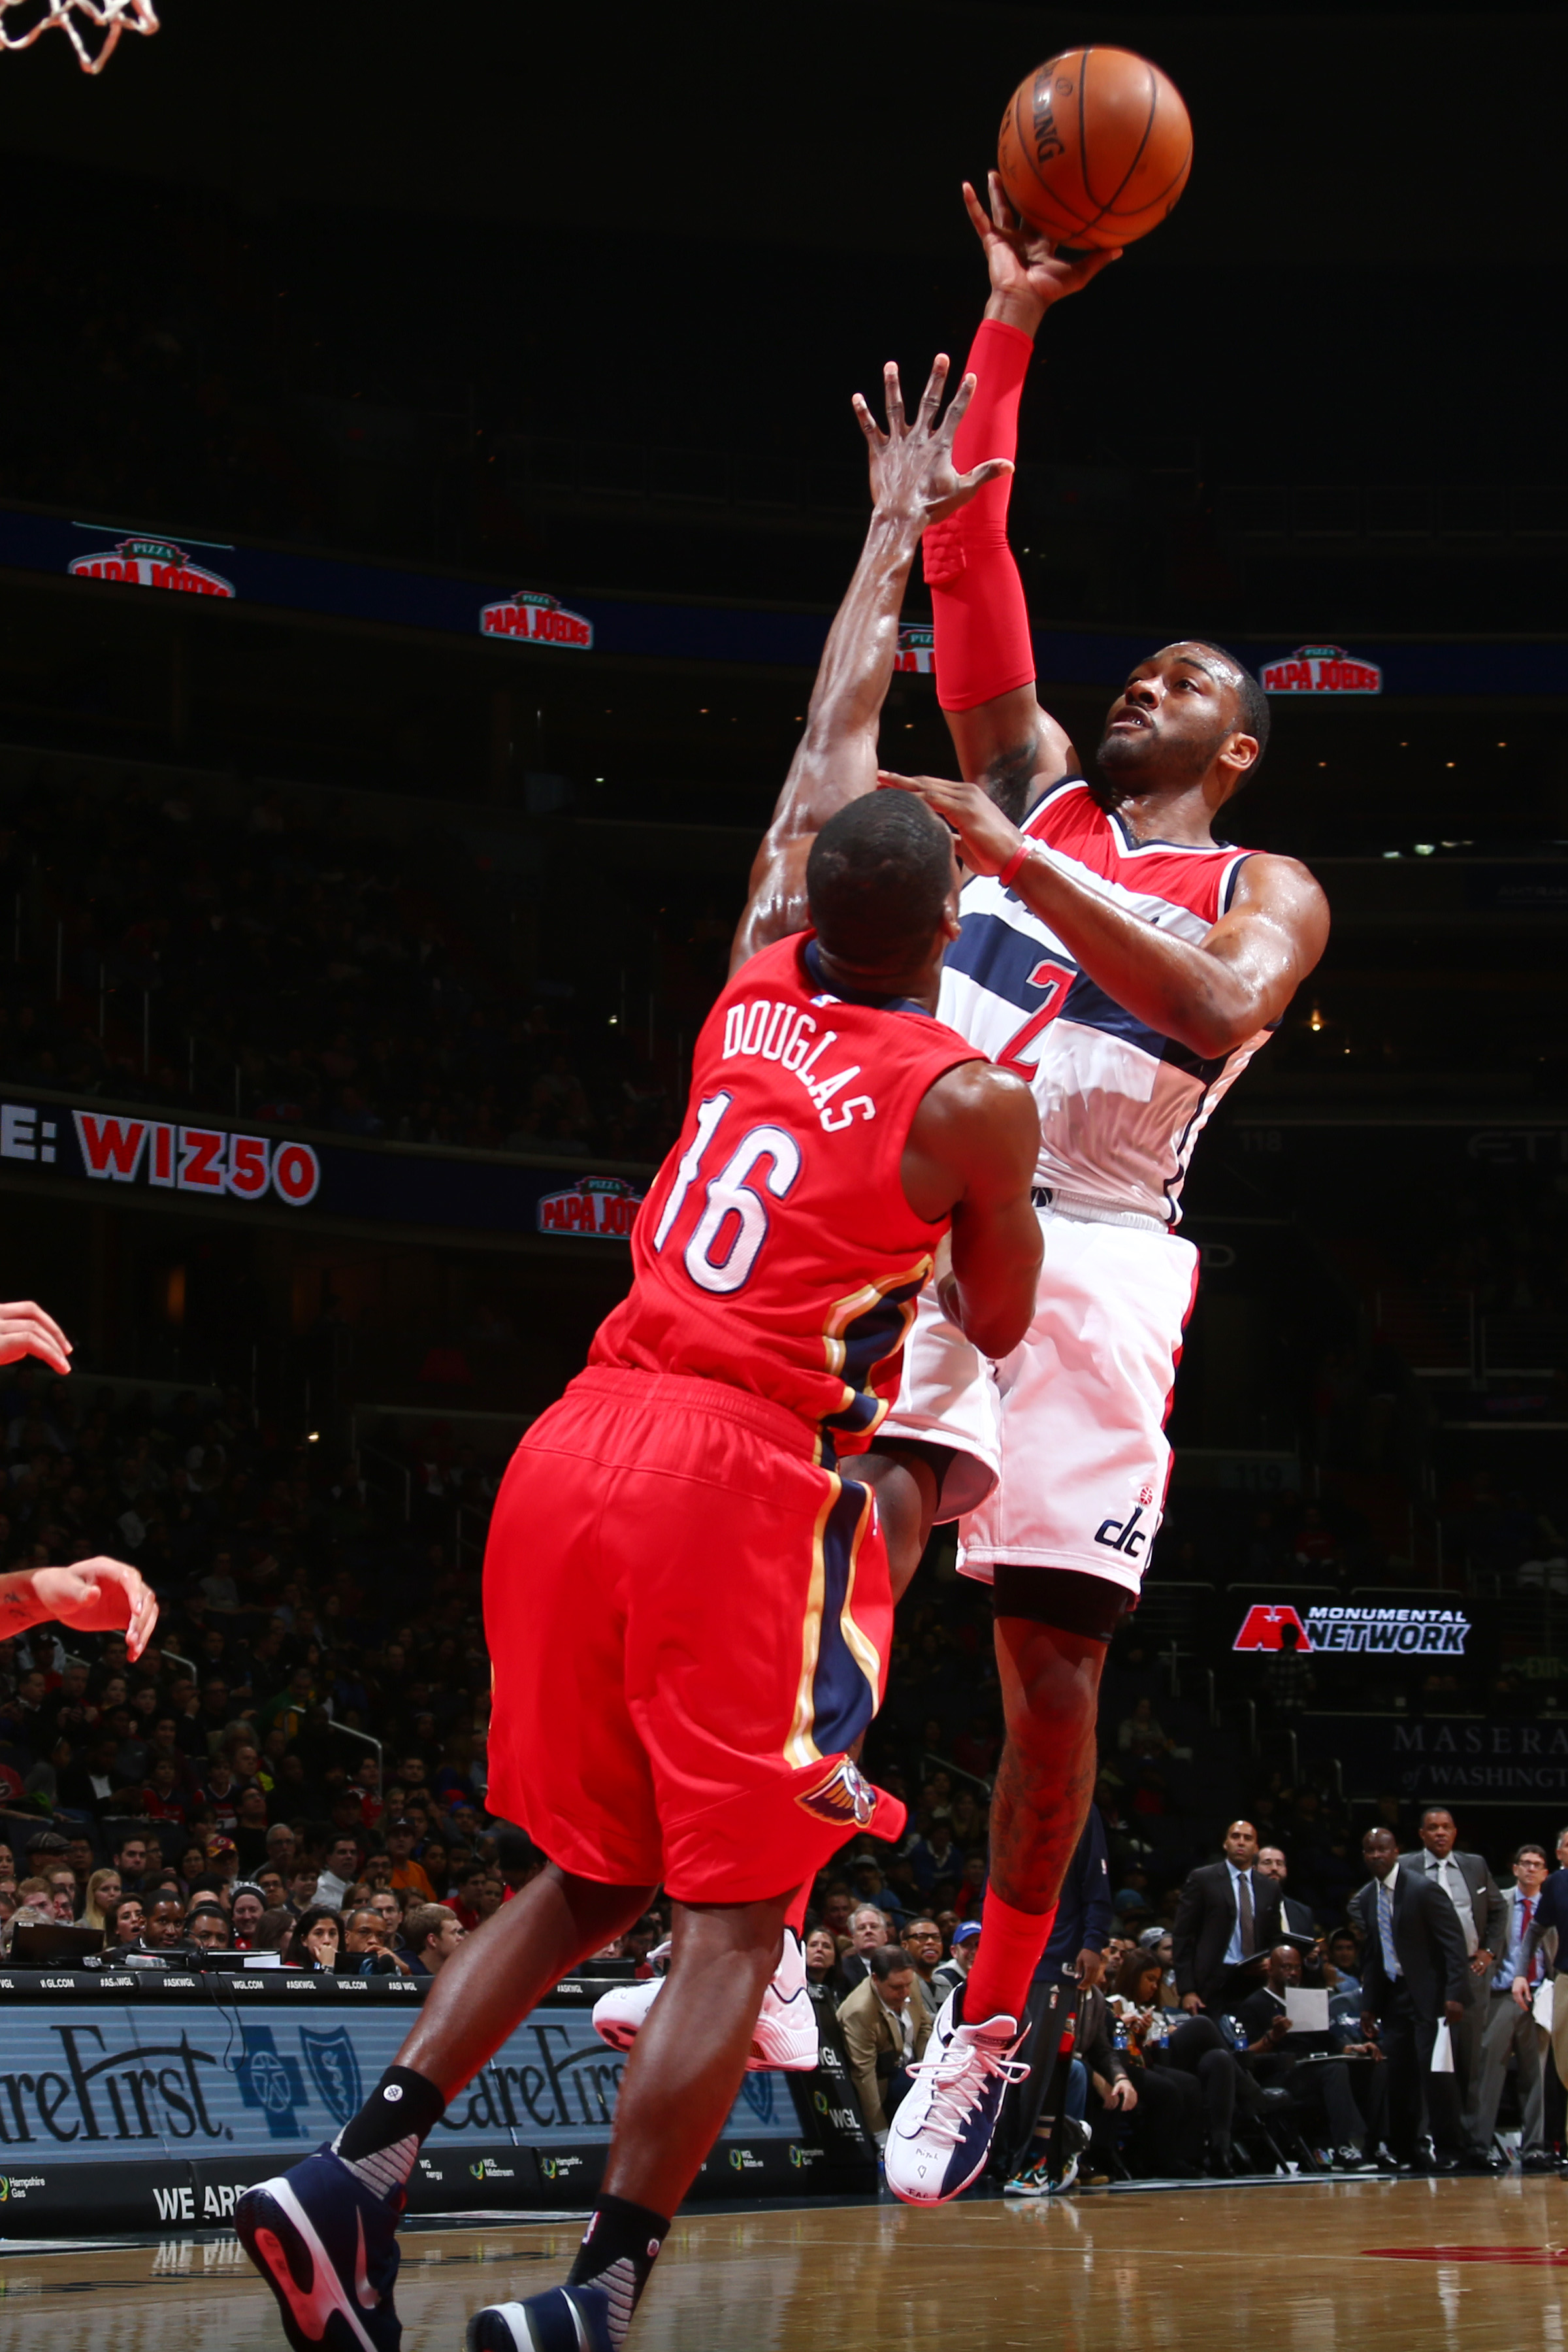 WASHINGTON, DC - FEBRUARY 23: John Wall #2 of the Washington Wizards shoots the ball against the New Orleans Pelicans on February 23, 2016 at Verizon Center in Washington, DC. (Photo by Ned Dishman/NBAE via Getty Images)